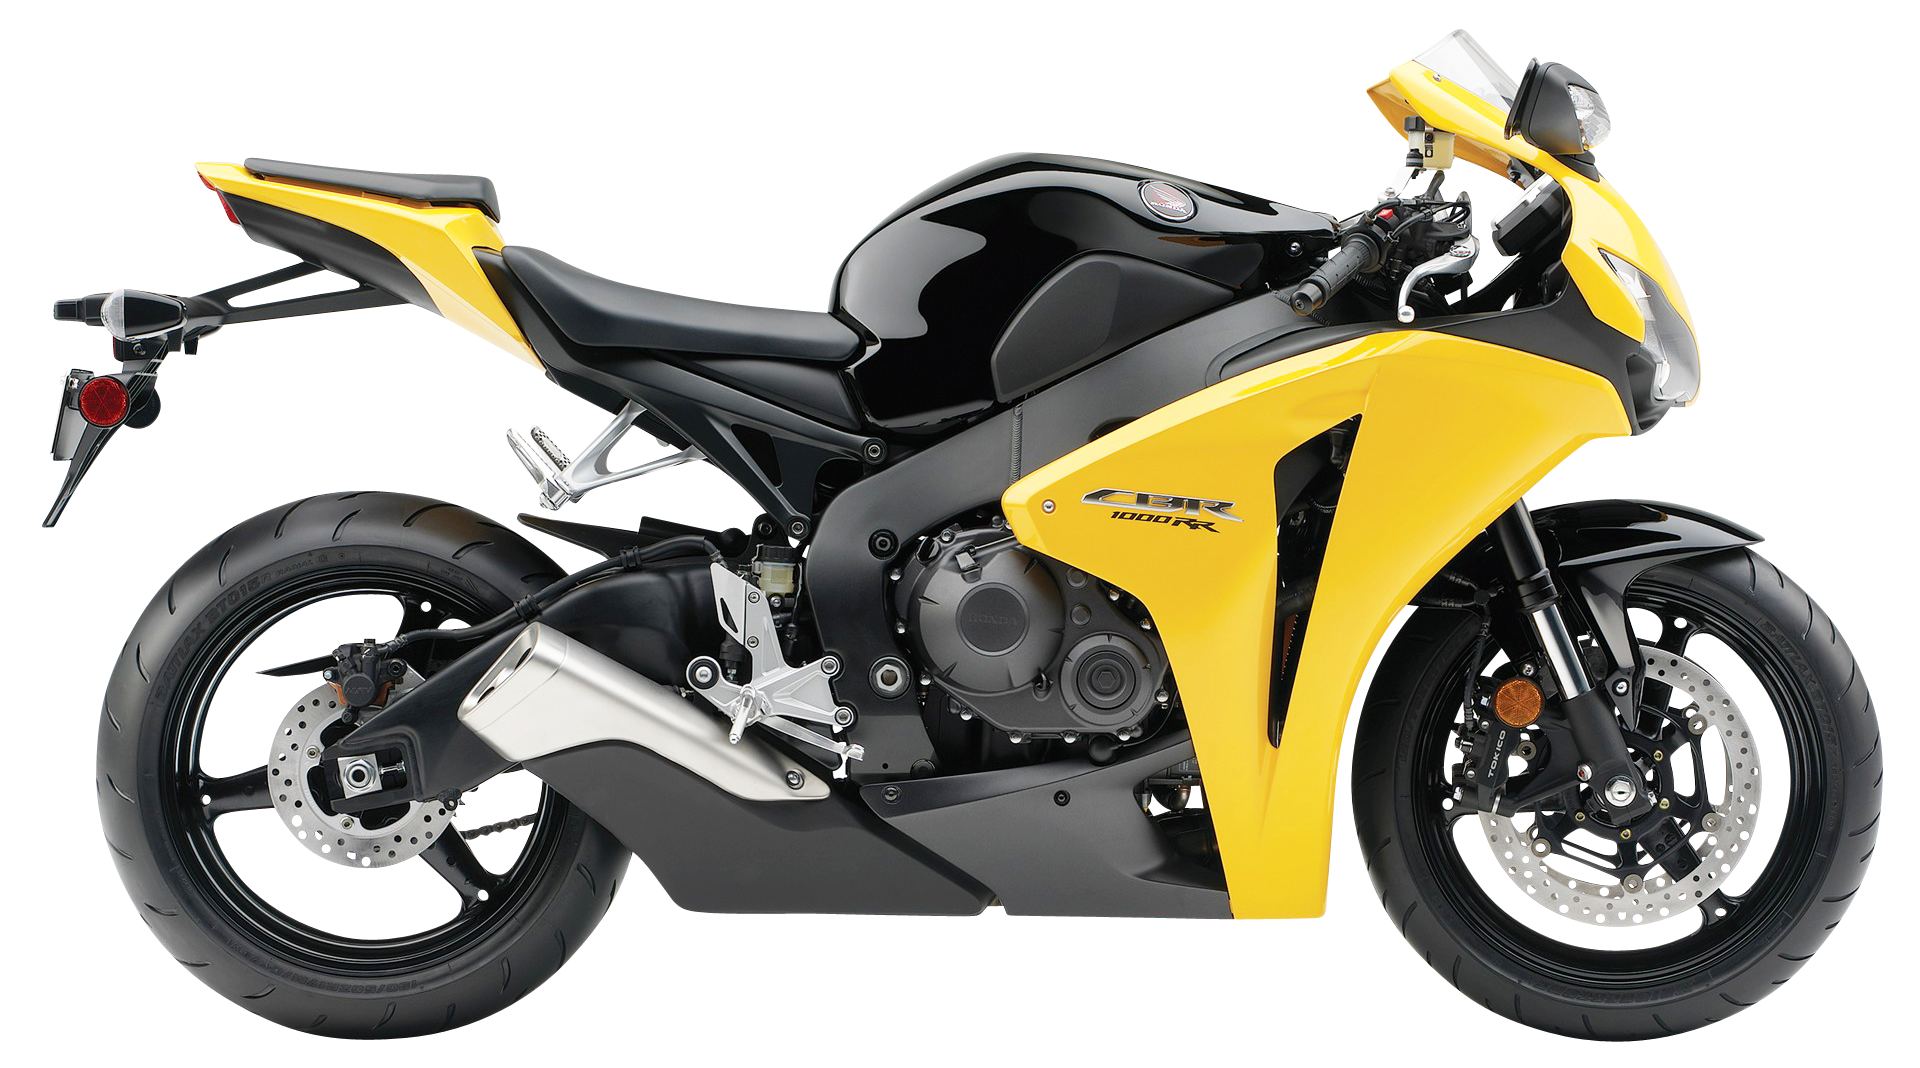 Honda cbr rr bike. Motorcycle clipart yellow motorcycle